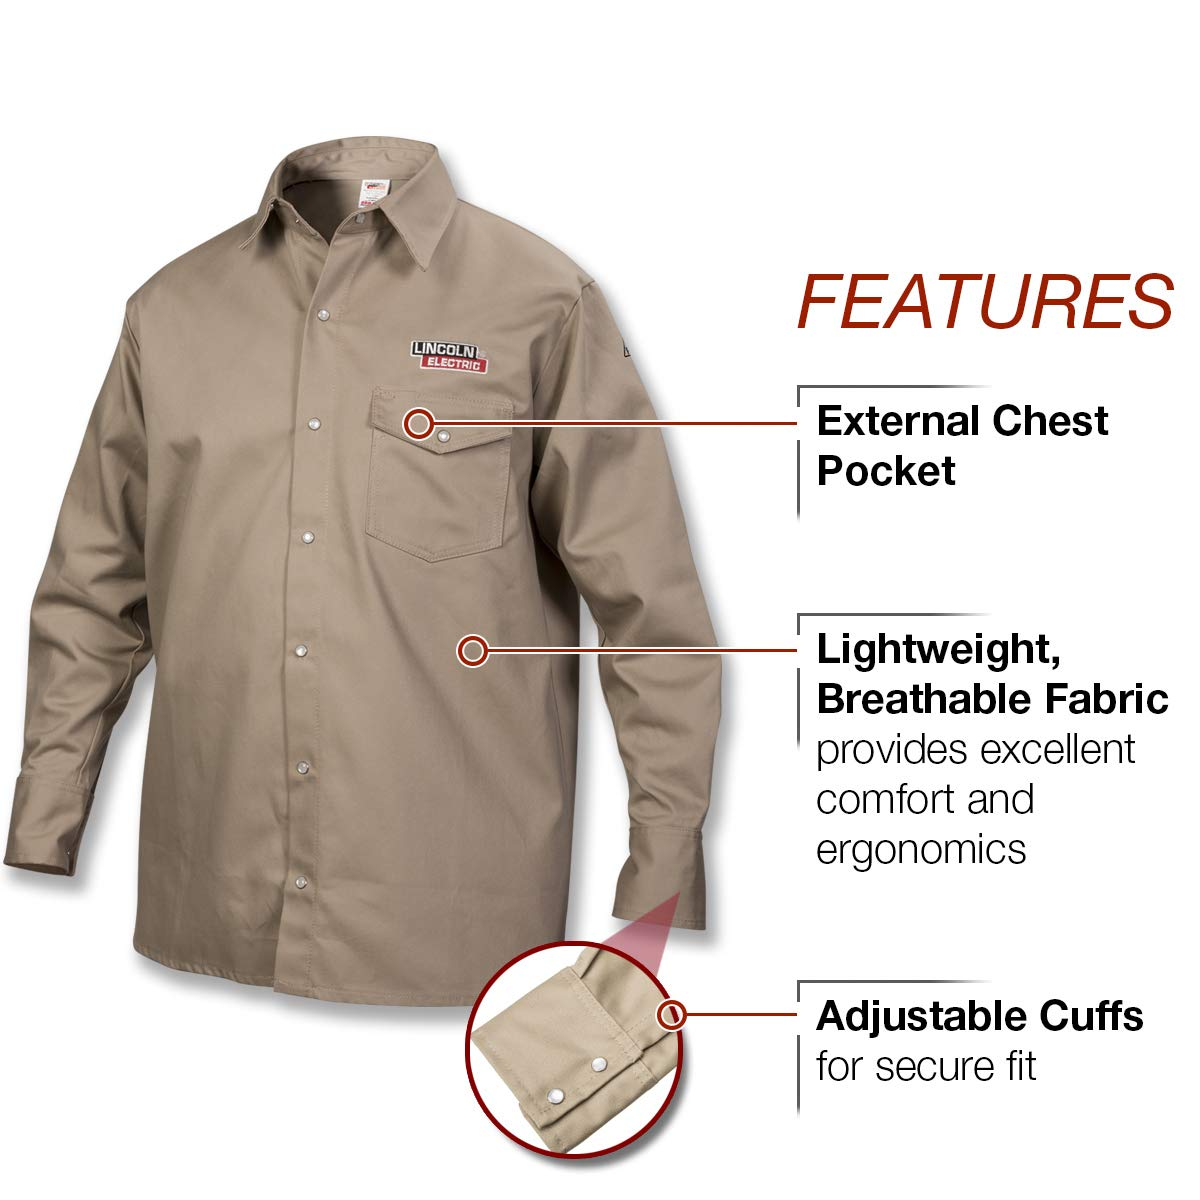 Lincoln Electric Welding Shirt | Premium Flame Resistant (FR) Cotton | Custom Fit | Khaki / Tan | Large | K3382-L by Lincoln Electric (Image #3)